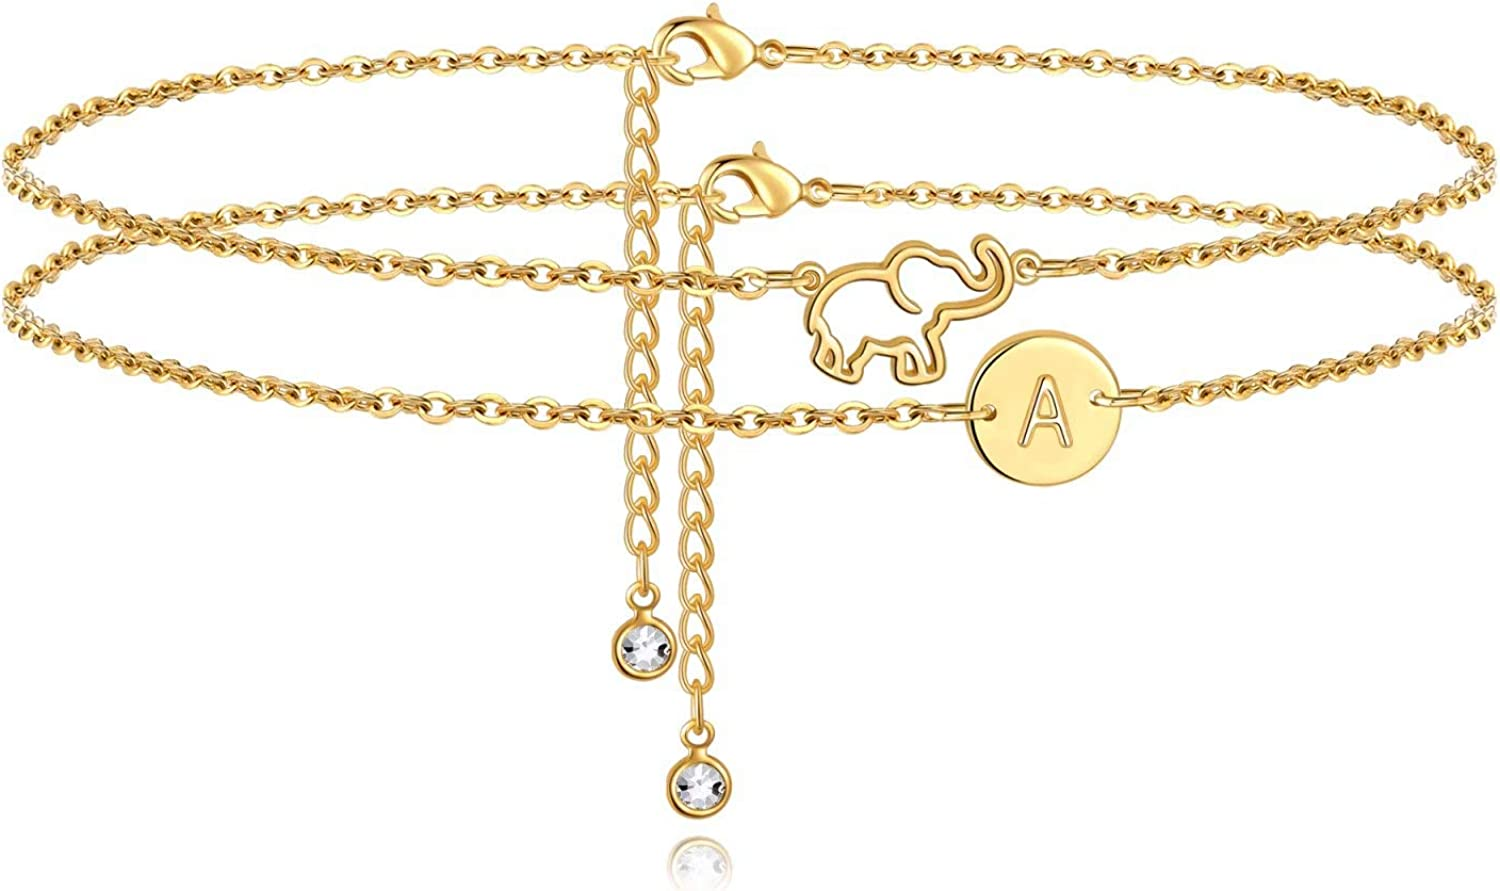 MONOOC Elephant Ankle Bracelets for Women, 14K Gold Plated Initial Letter Bohemian Anklets Dainty Elephant Anklet Layered Boho Summer Beach Anklets for Women Jewelry